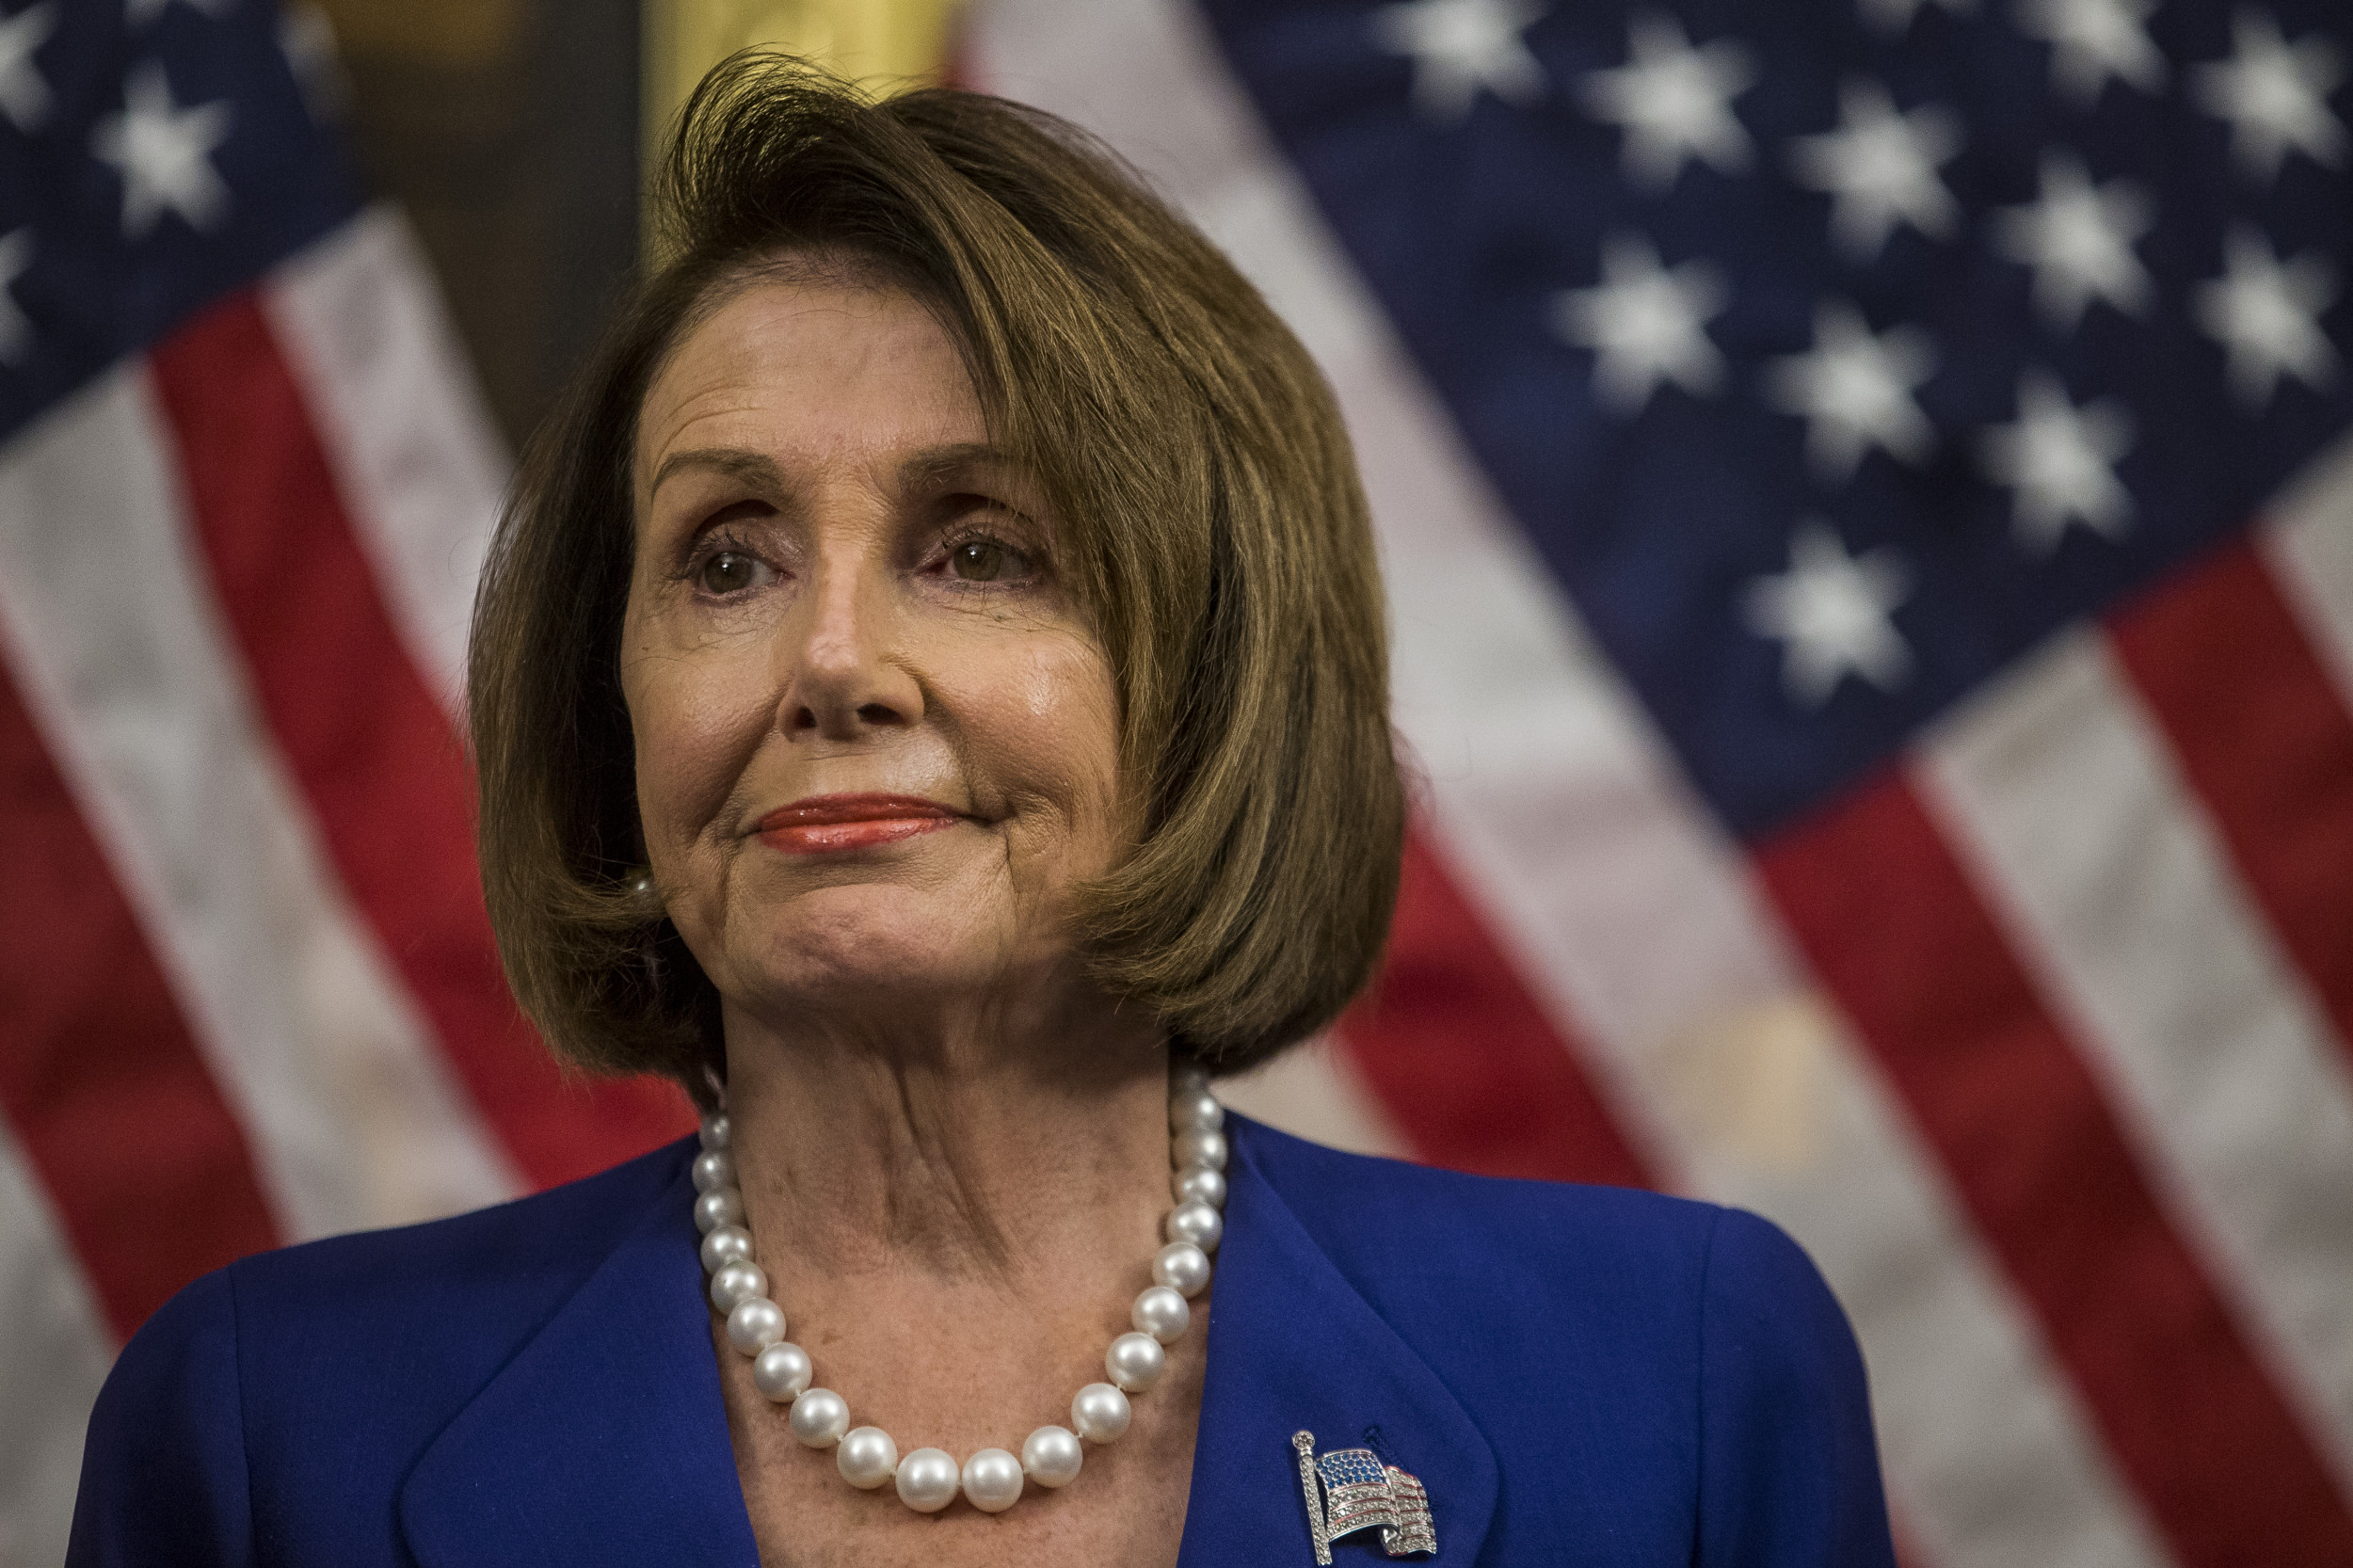 """""""Speaker Pelosi"""" trends as followers praise her for using Trump's """"unhinged meltdown"""" image as her Twitter cover photo"""